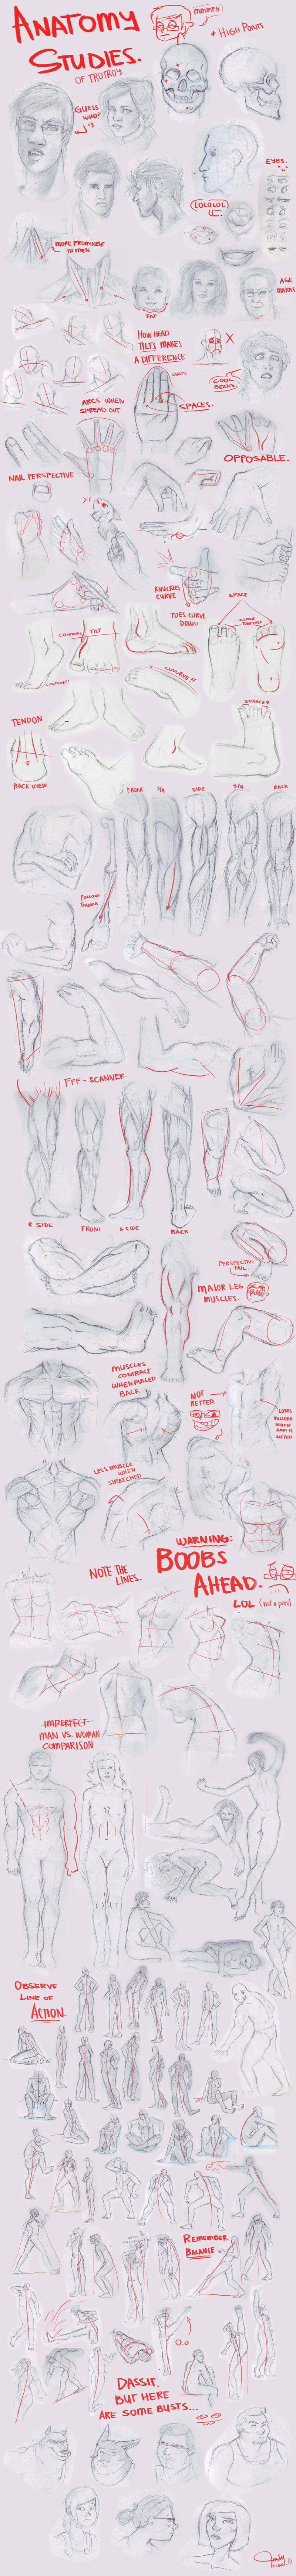 Anatomy Studies by trotroy